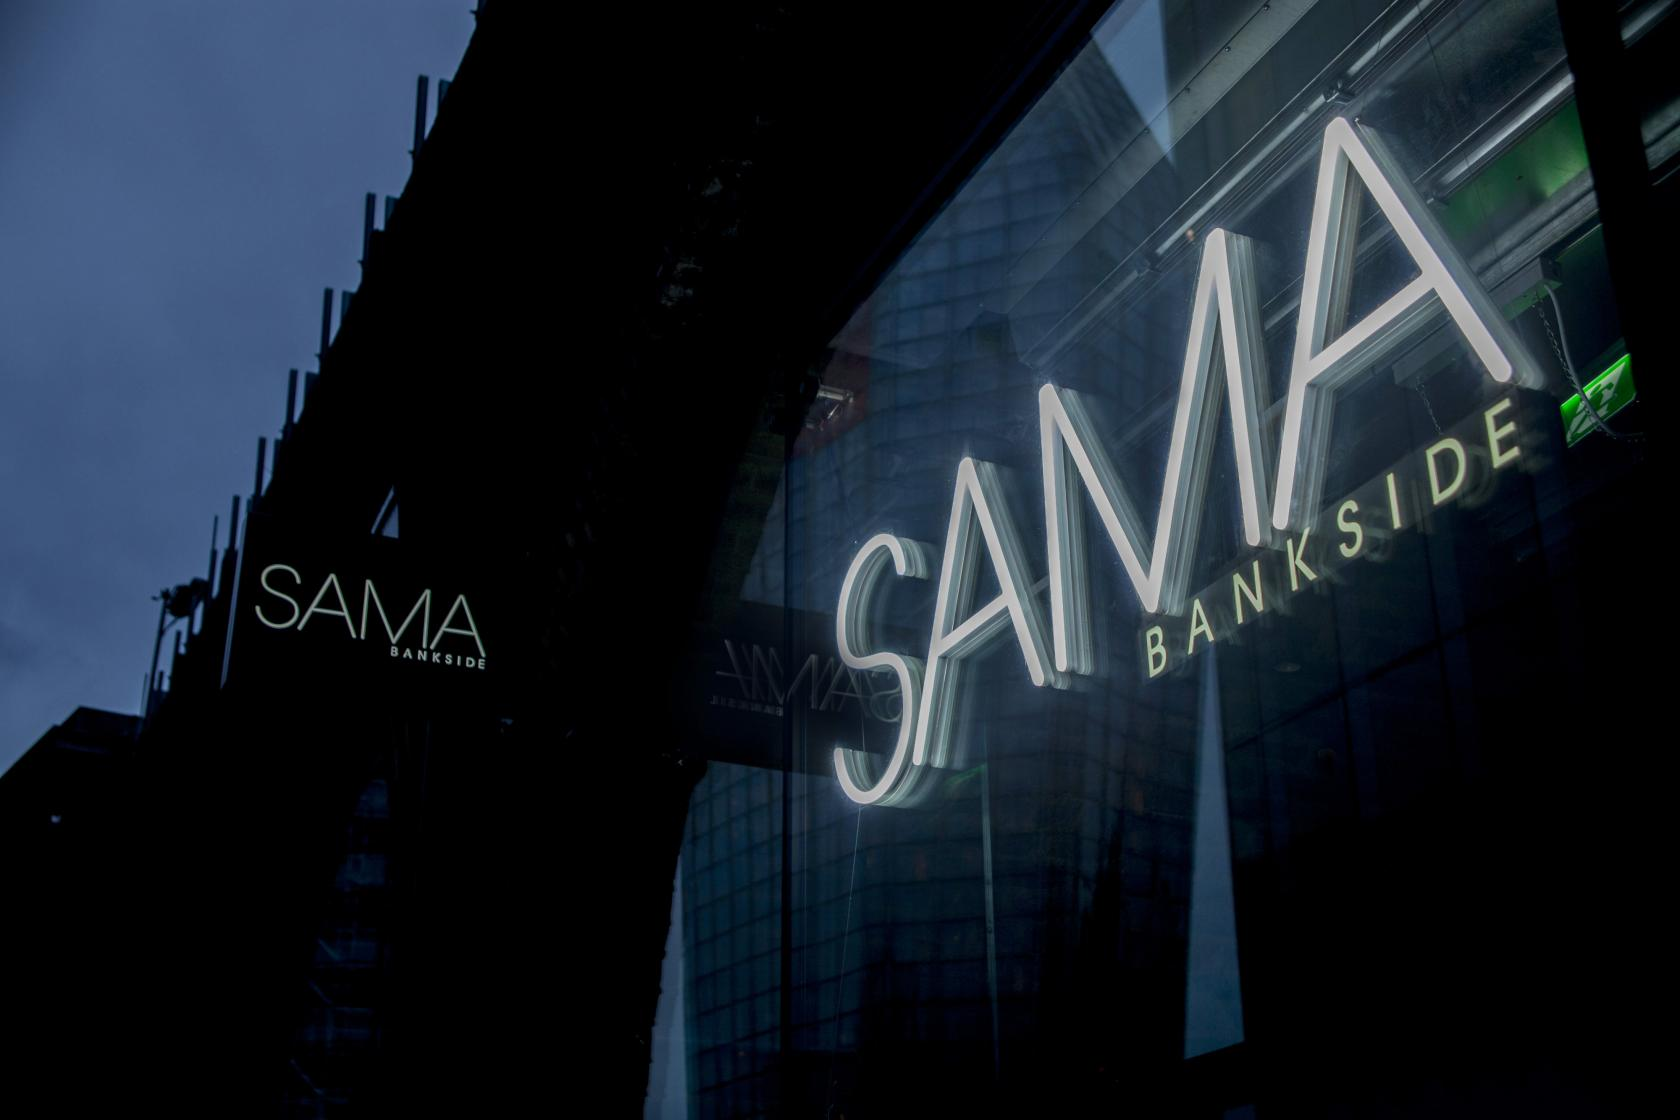 Sama Bankside For Private Venue Hire Prices Amp Reviews